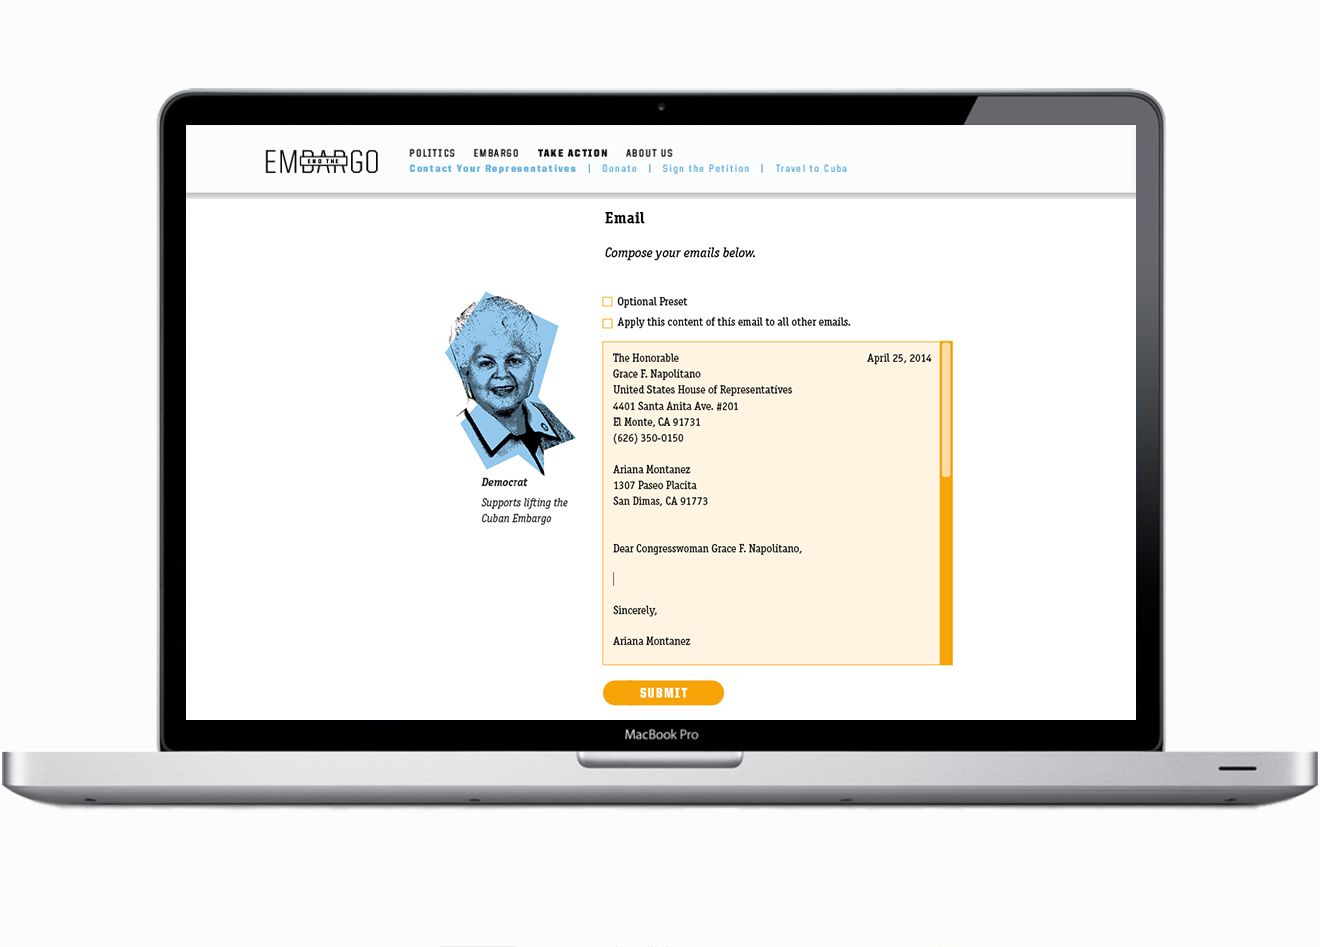 Users can identify and email their representatives through this site.